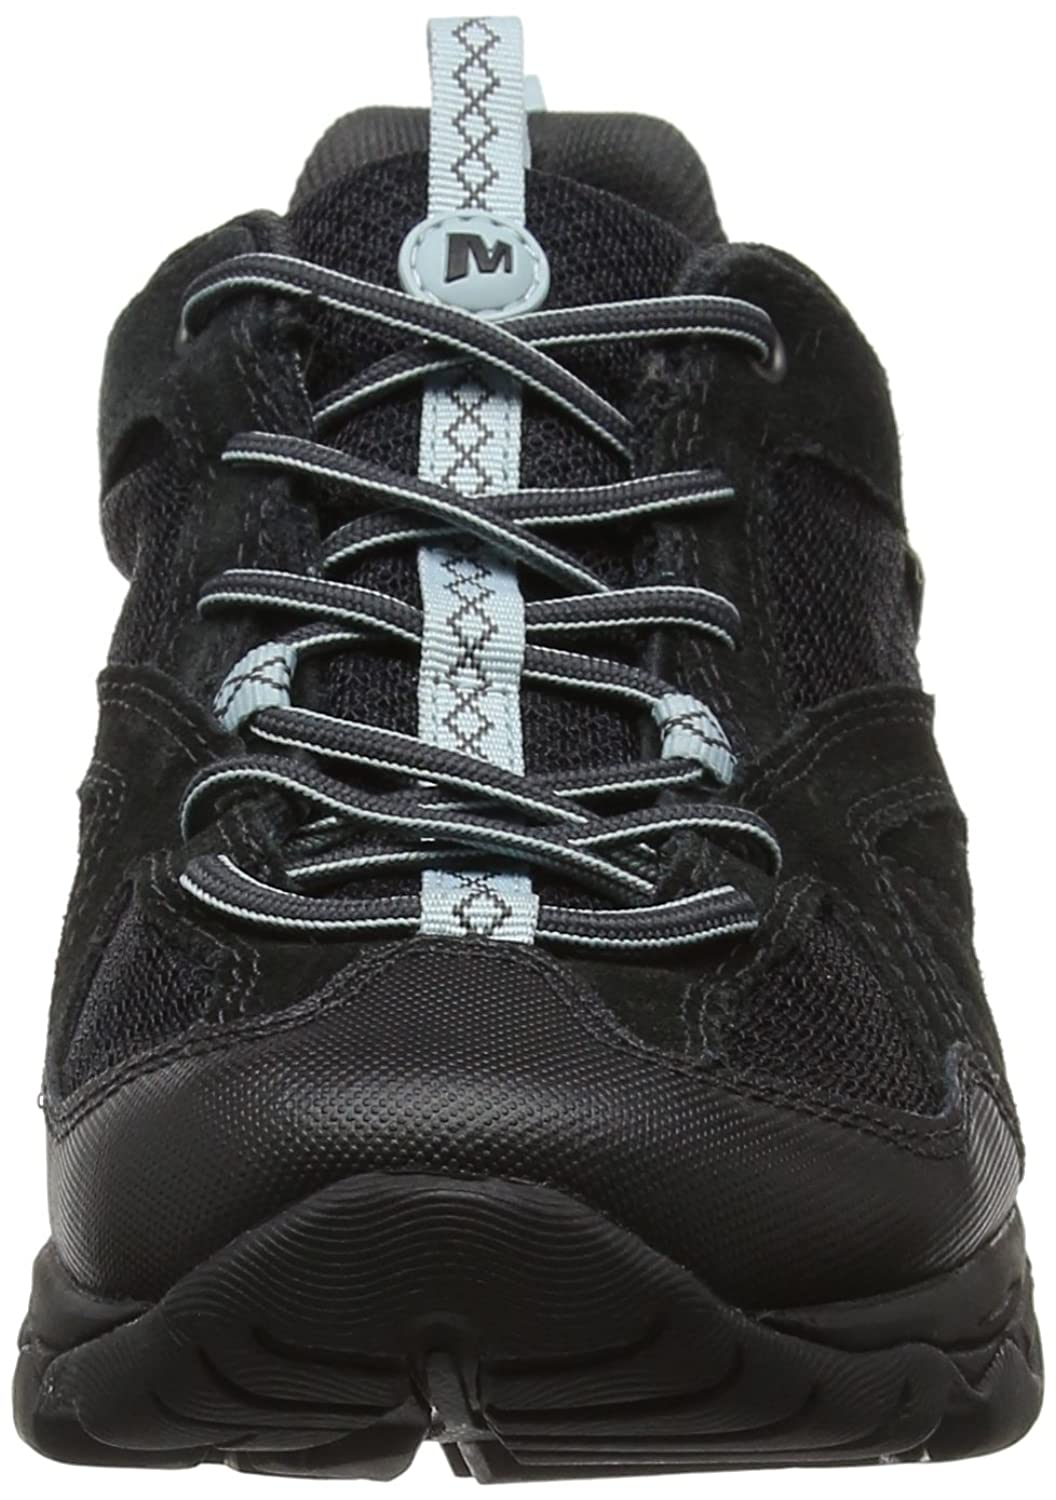 Merrell Avian Light 2 Vent Waterproof, Chaussures de Randonnée Basses Femme, (Black), 38 EU